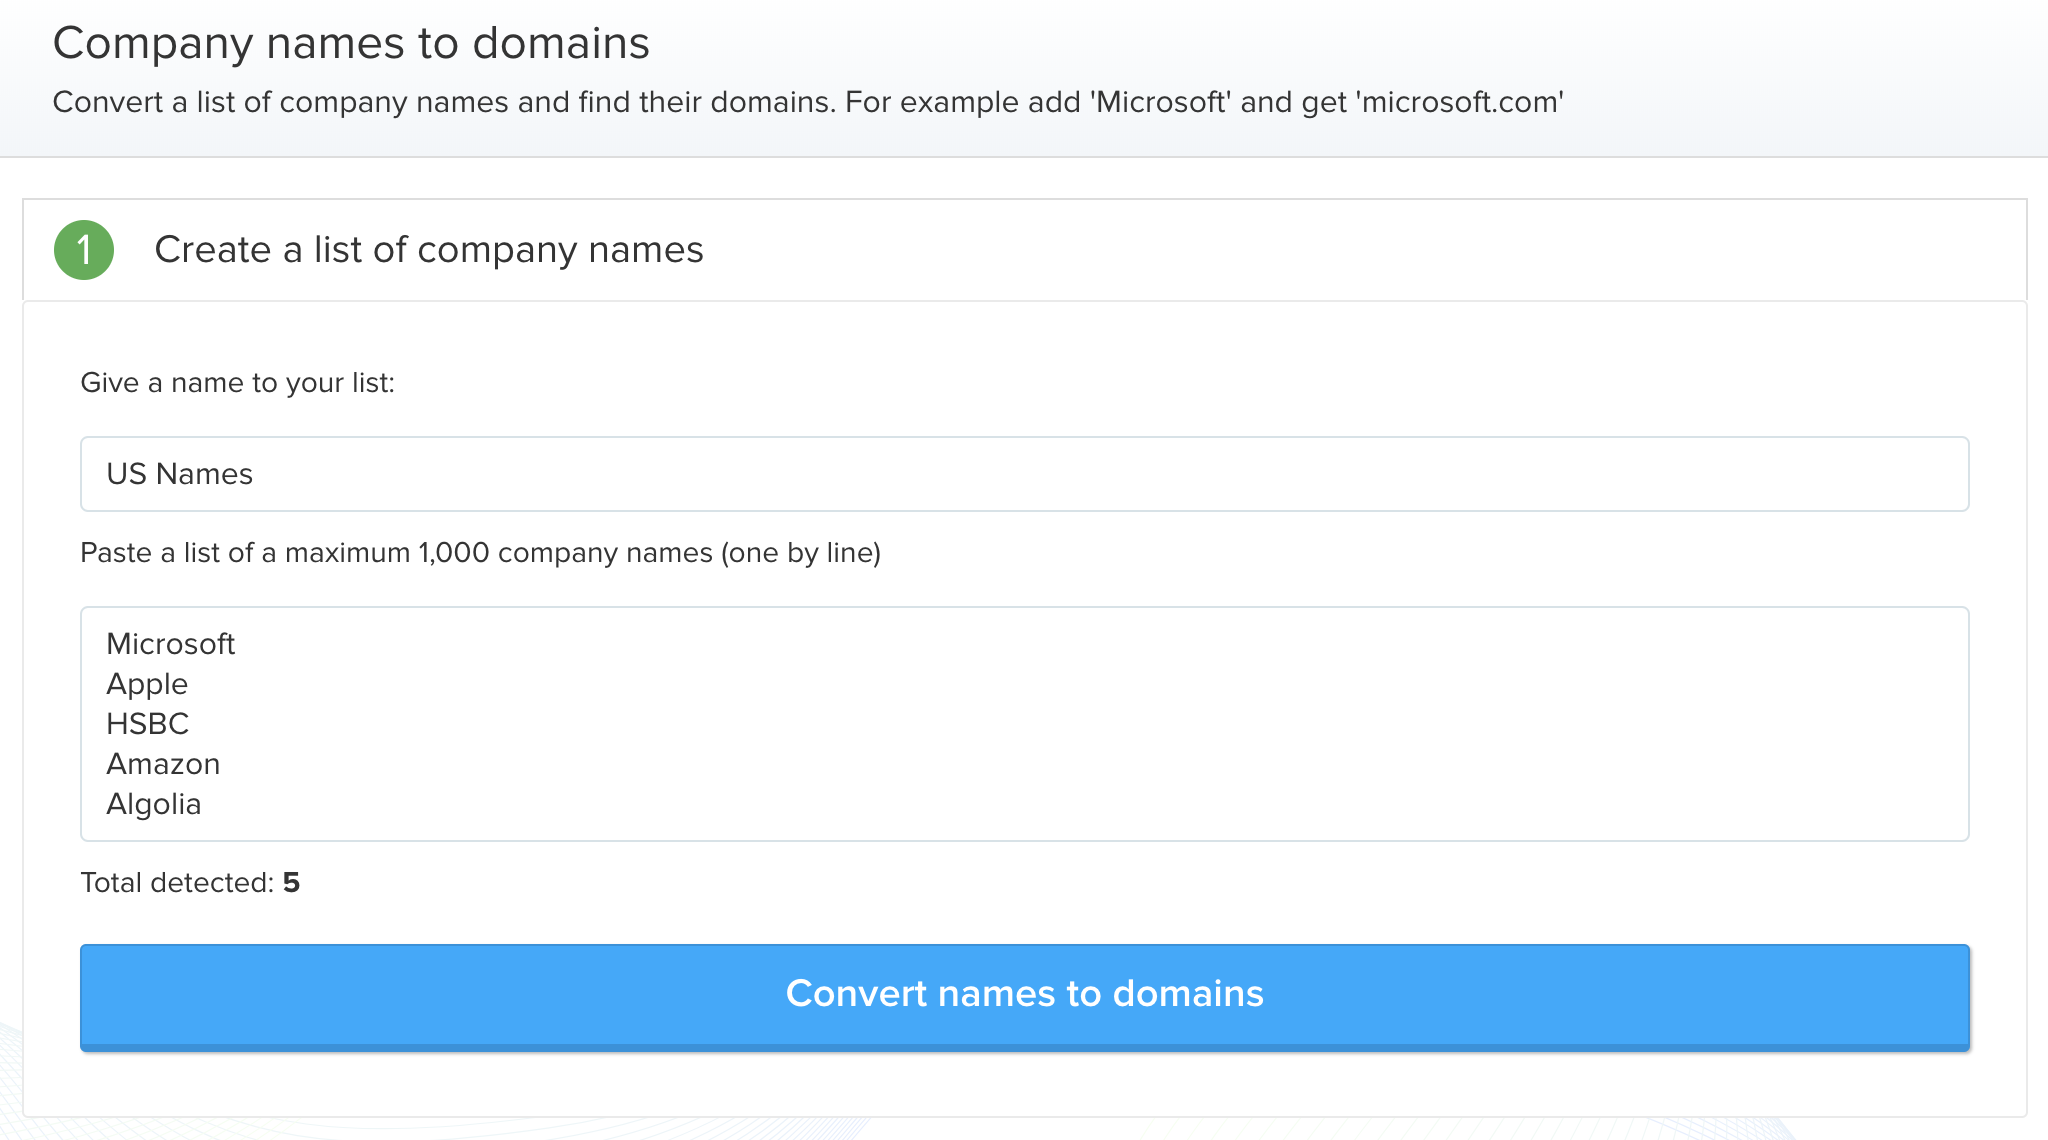 Prospecting - Convert names to domains